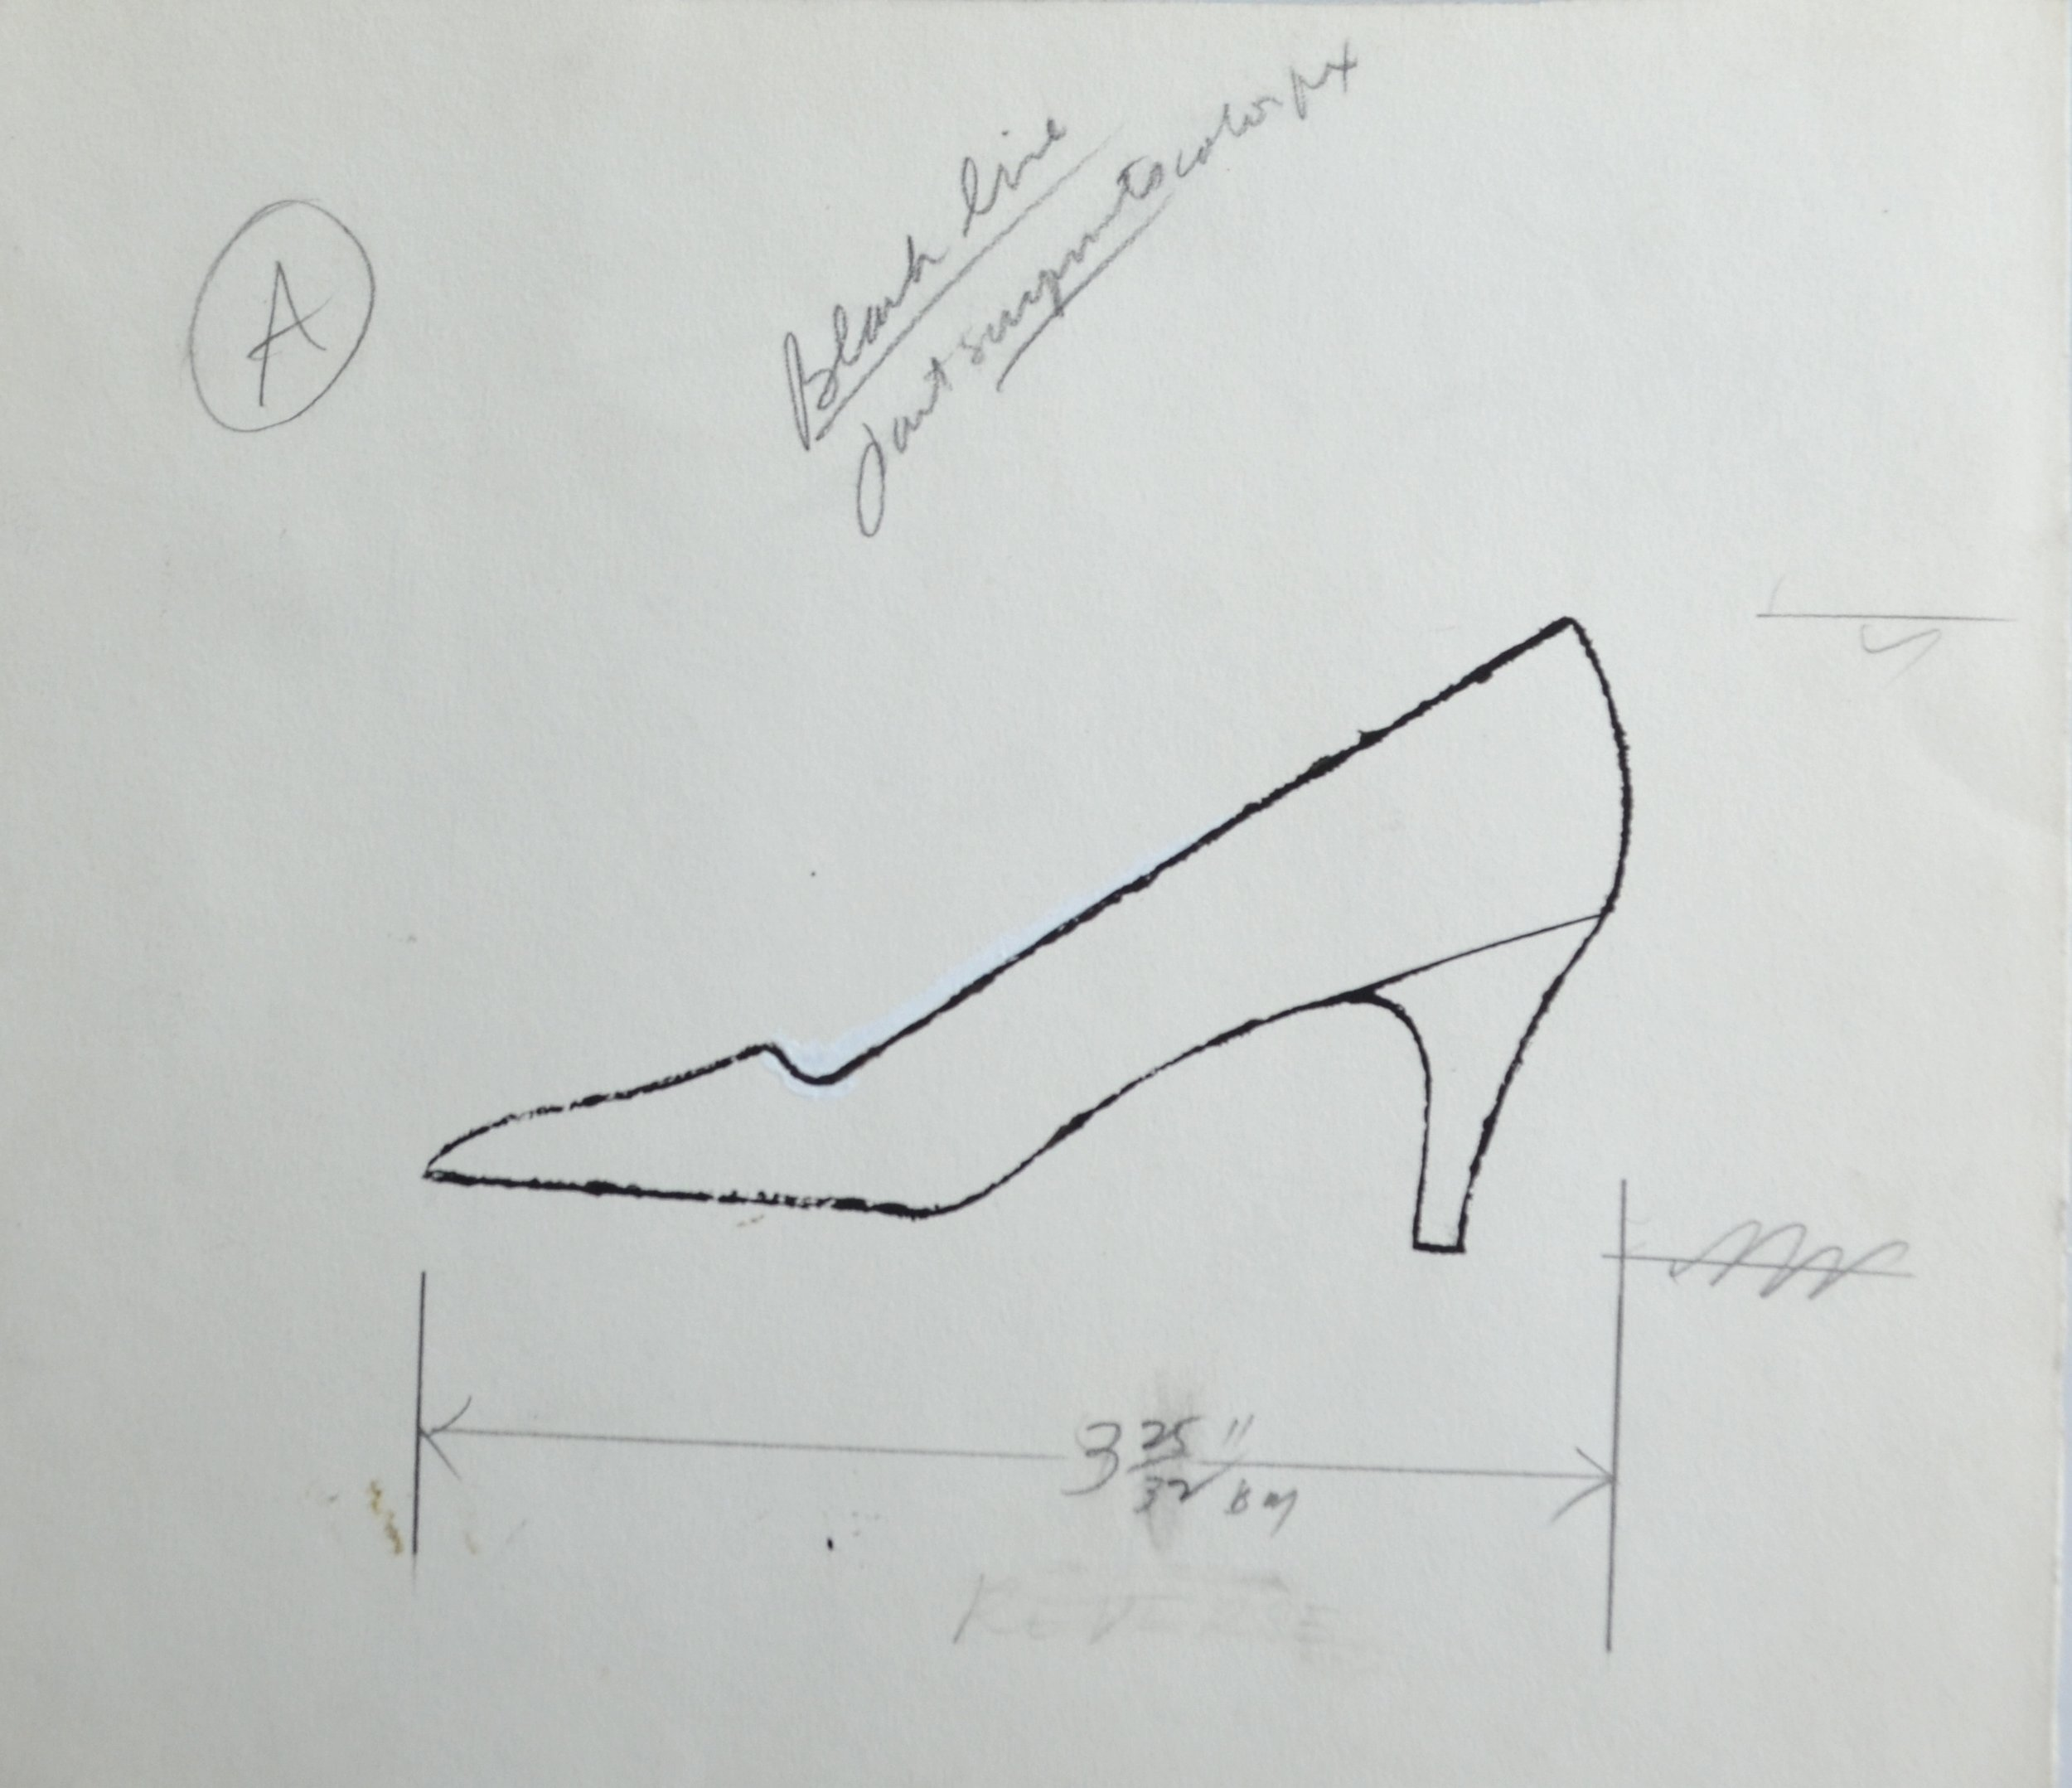 ink and graphite work on paper of a shoe with measurements by Andy Warhol